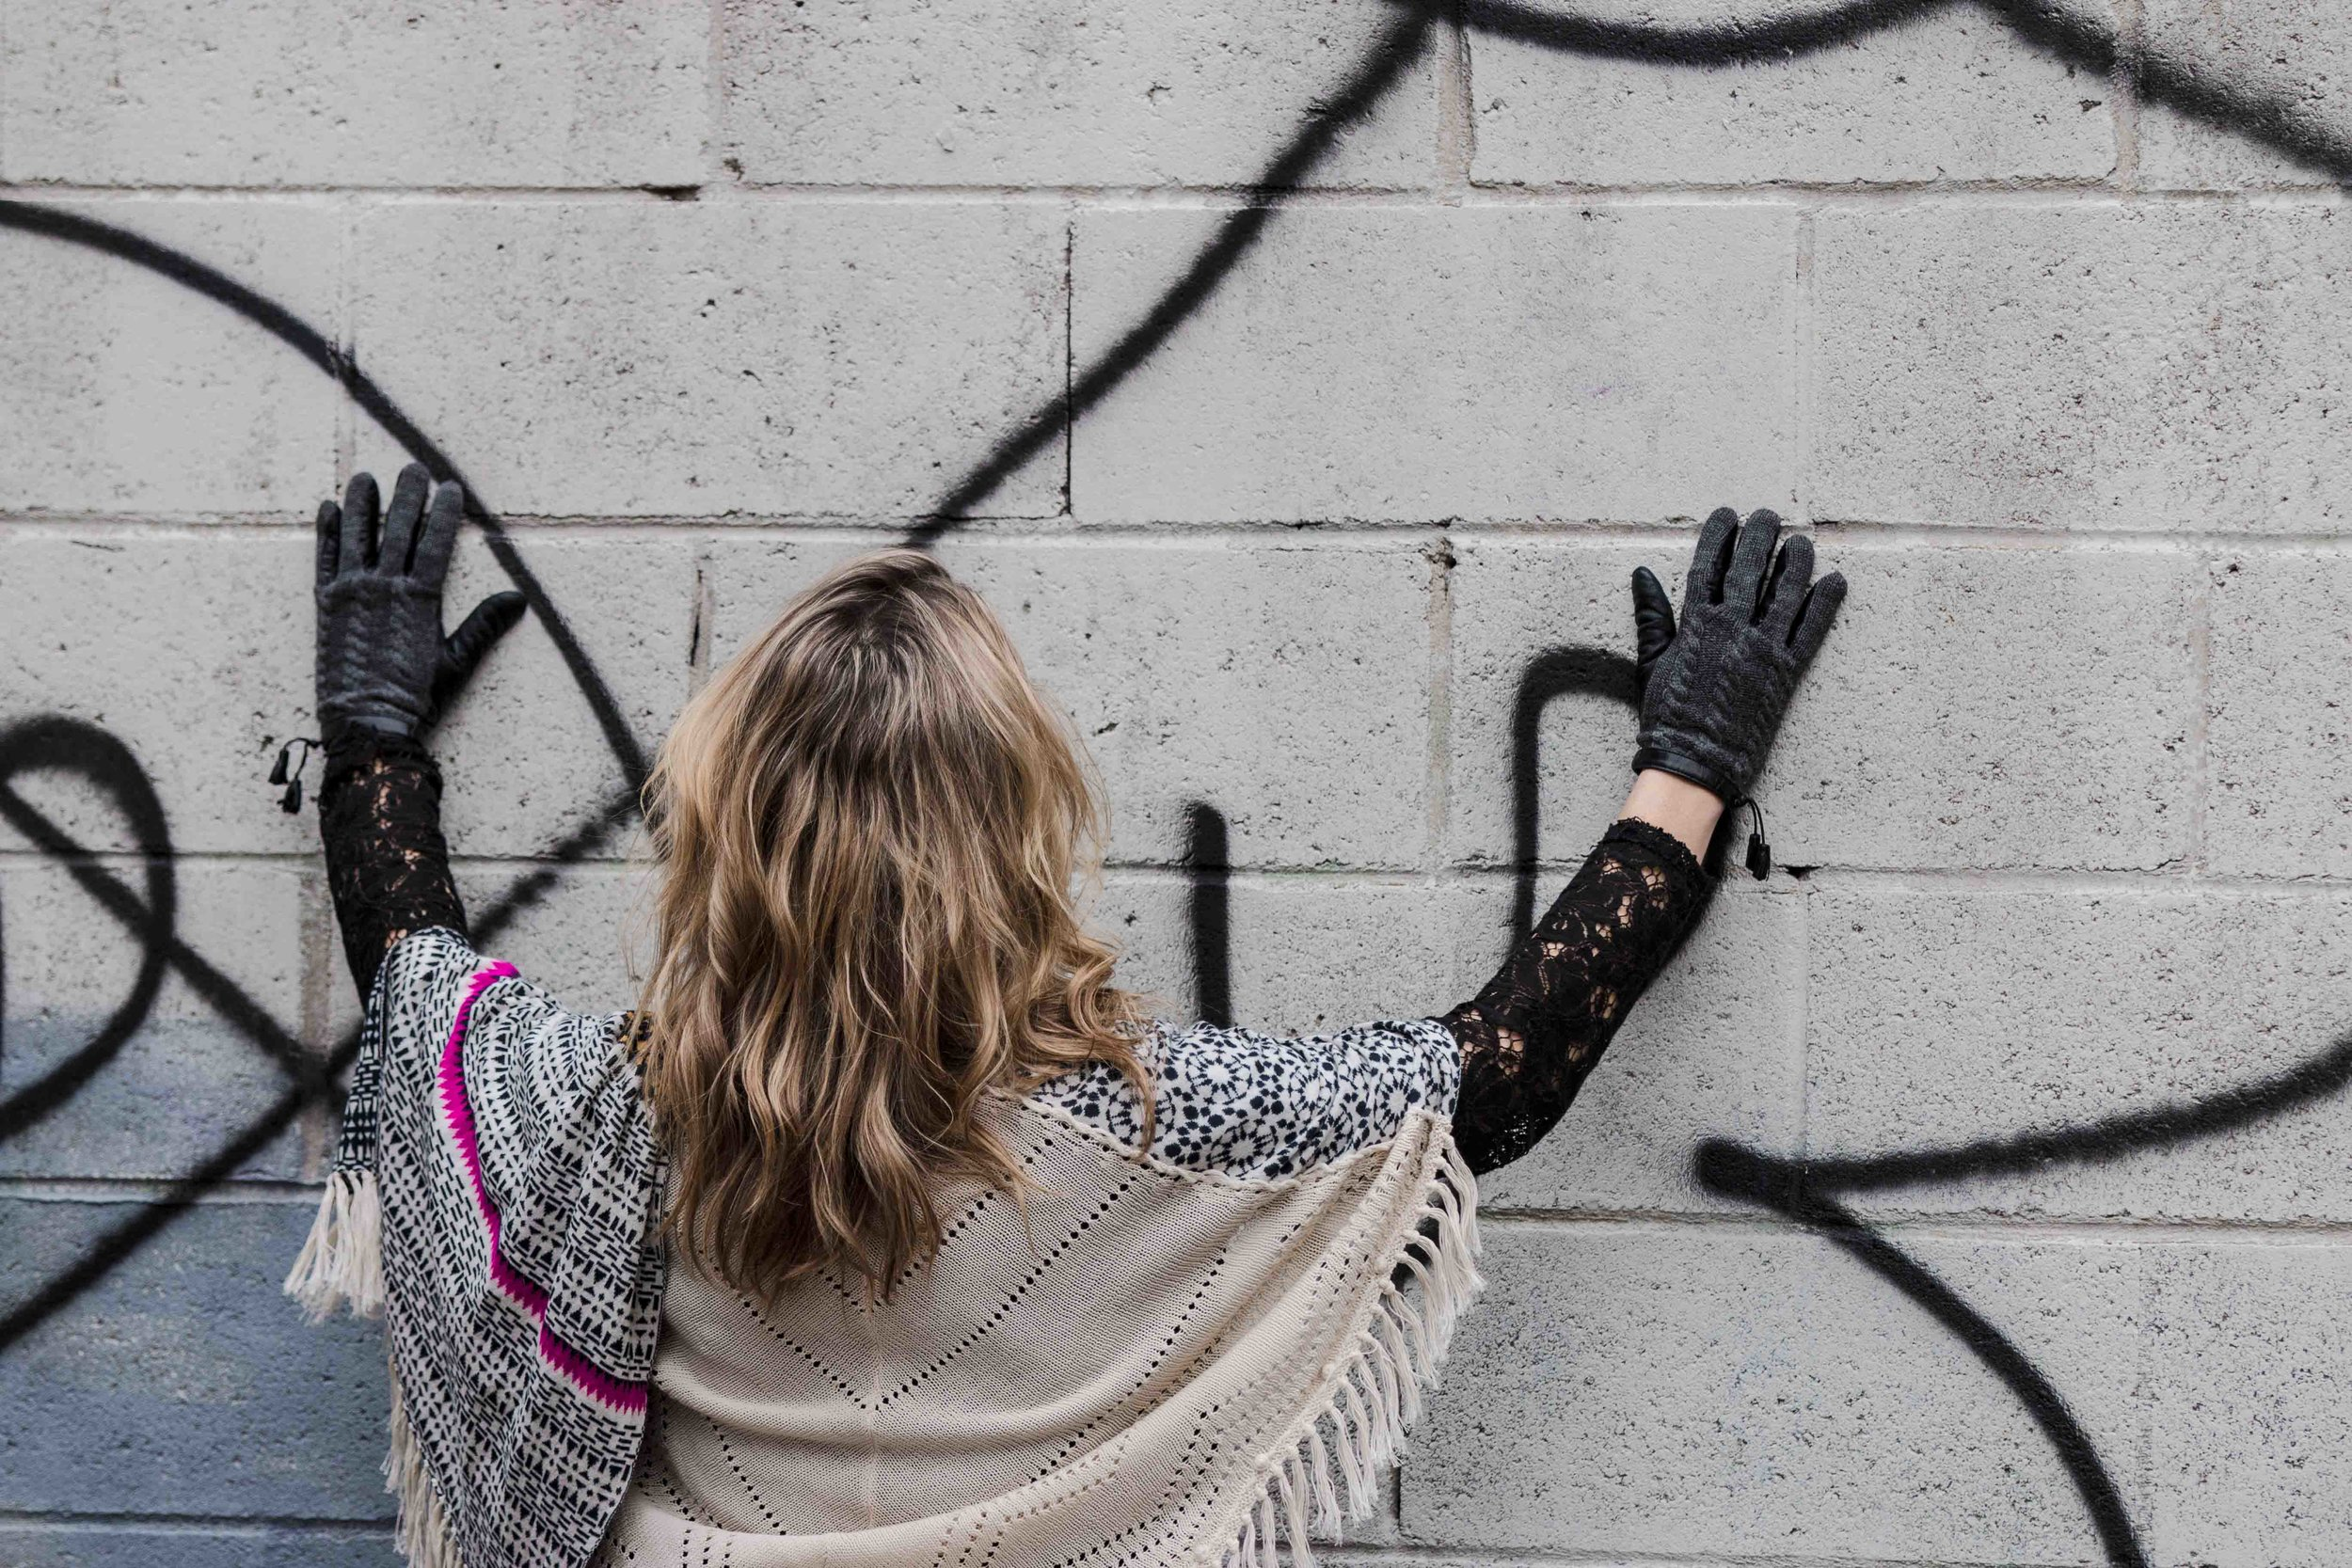 graffiti and gloves